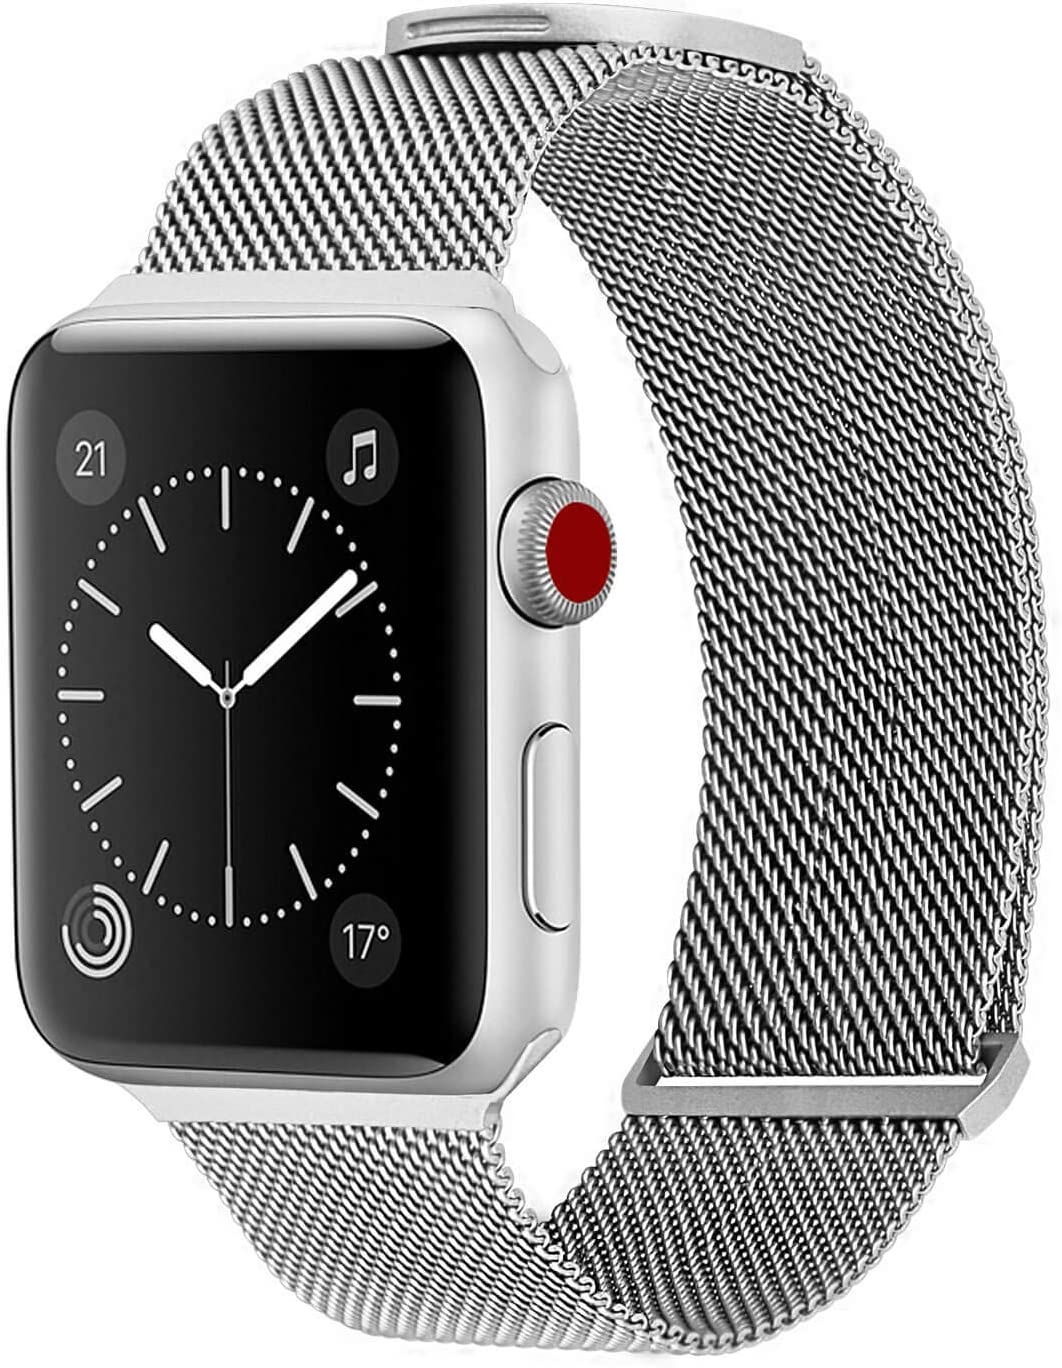 WareWel - Stainless Steel Apple Watch Compatible Bands for Men & Women (Milanese Mesh Silver, 38/40) | Quick Install Replacement Apple Watch Bracelet Bands | Premium Finish & Sturdy Closure